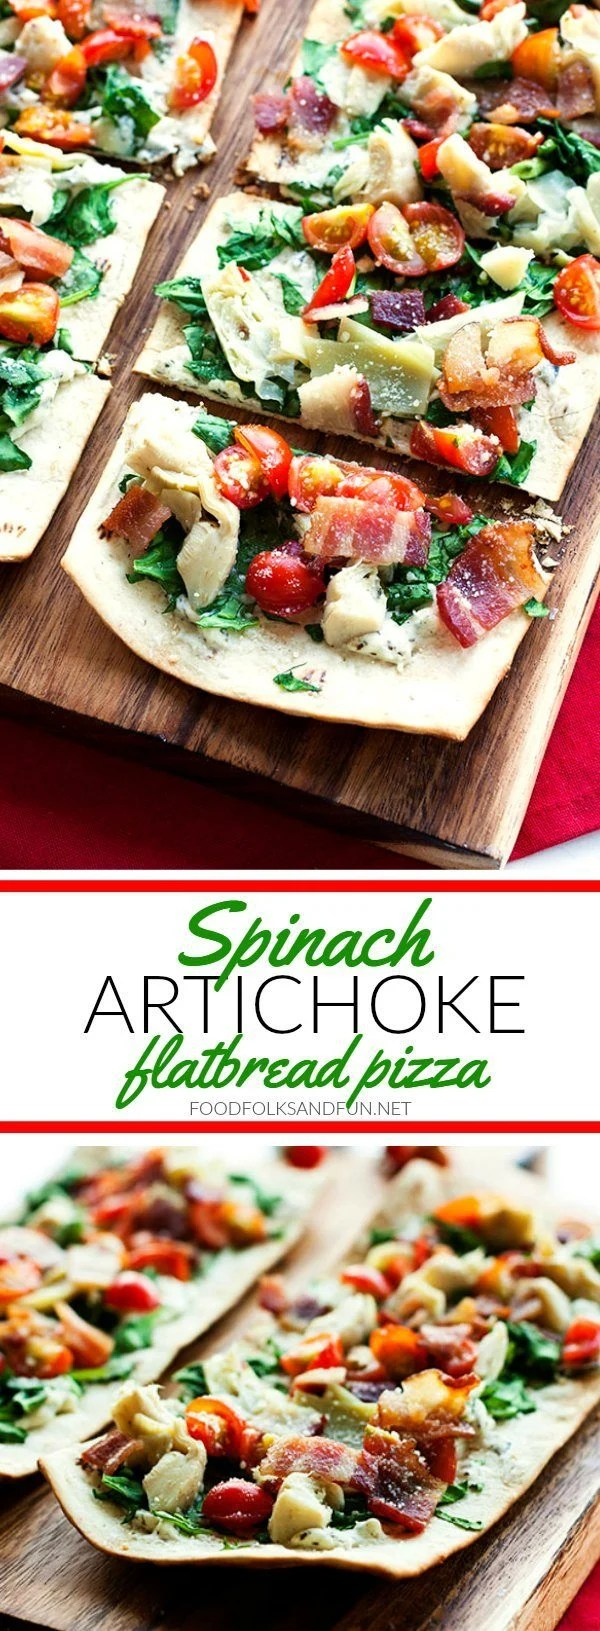 A collage of Spinach Artichoke flatbread pizza with text overlay for Pinterest